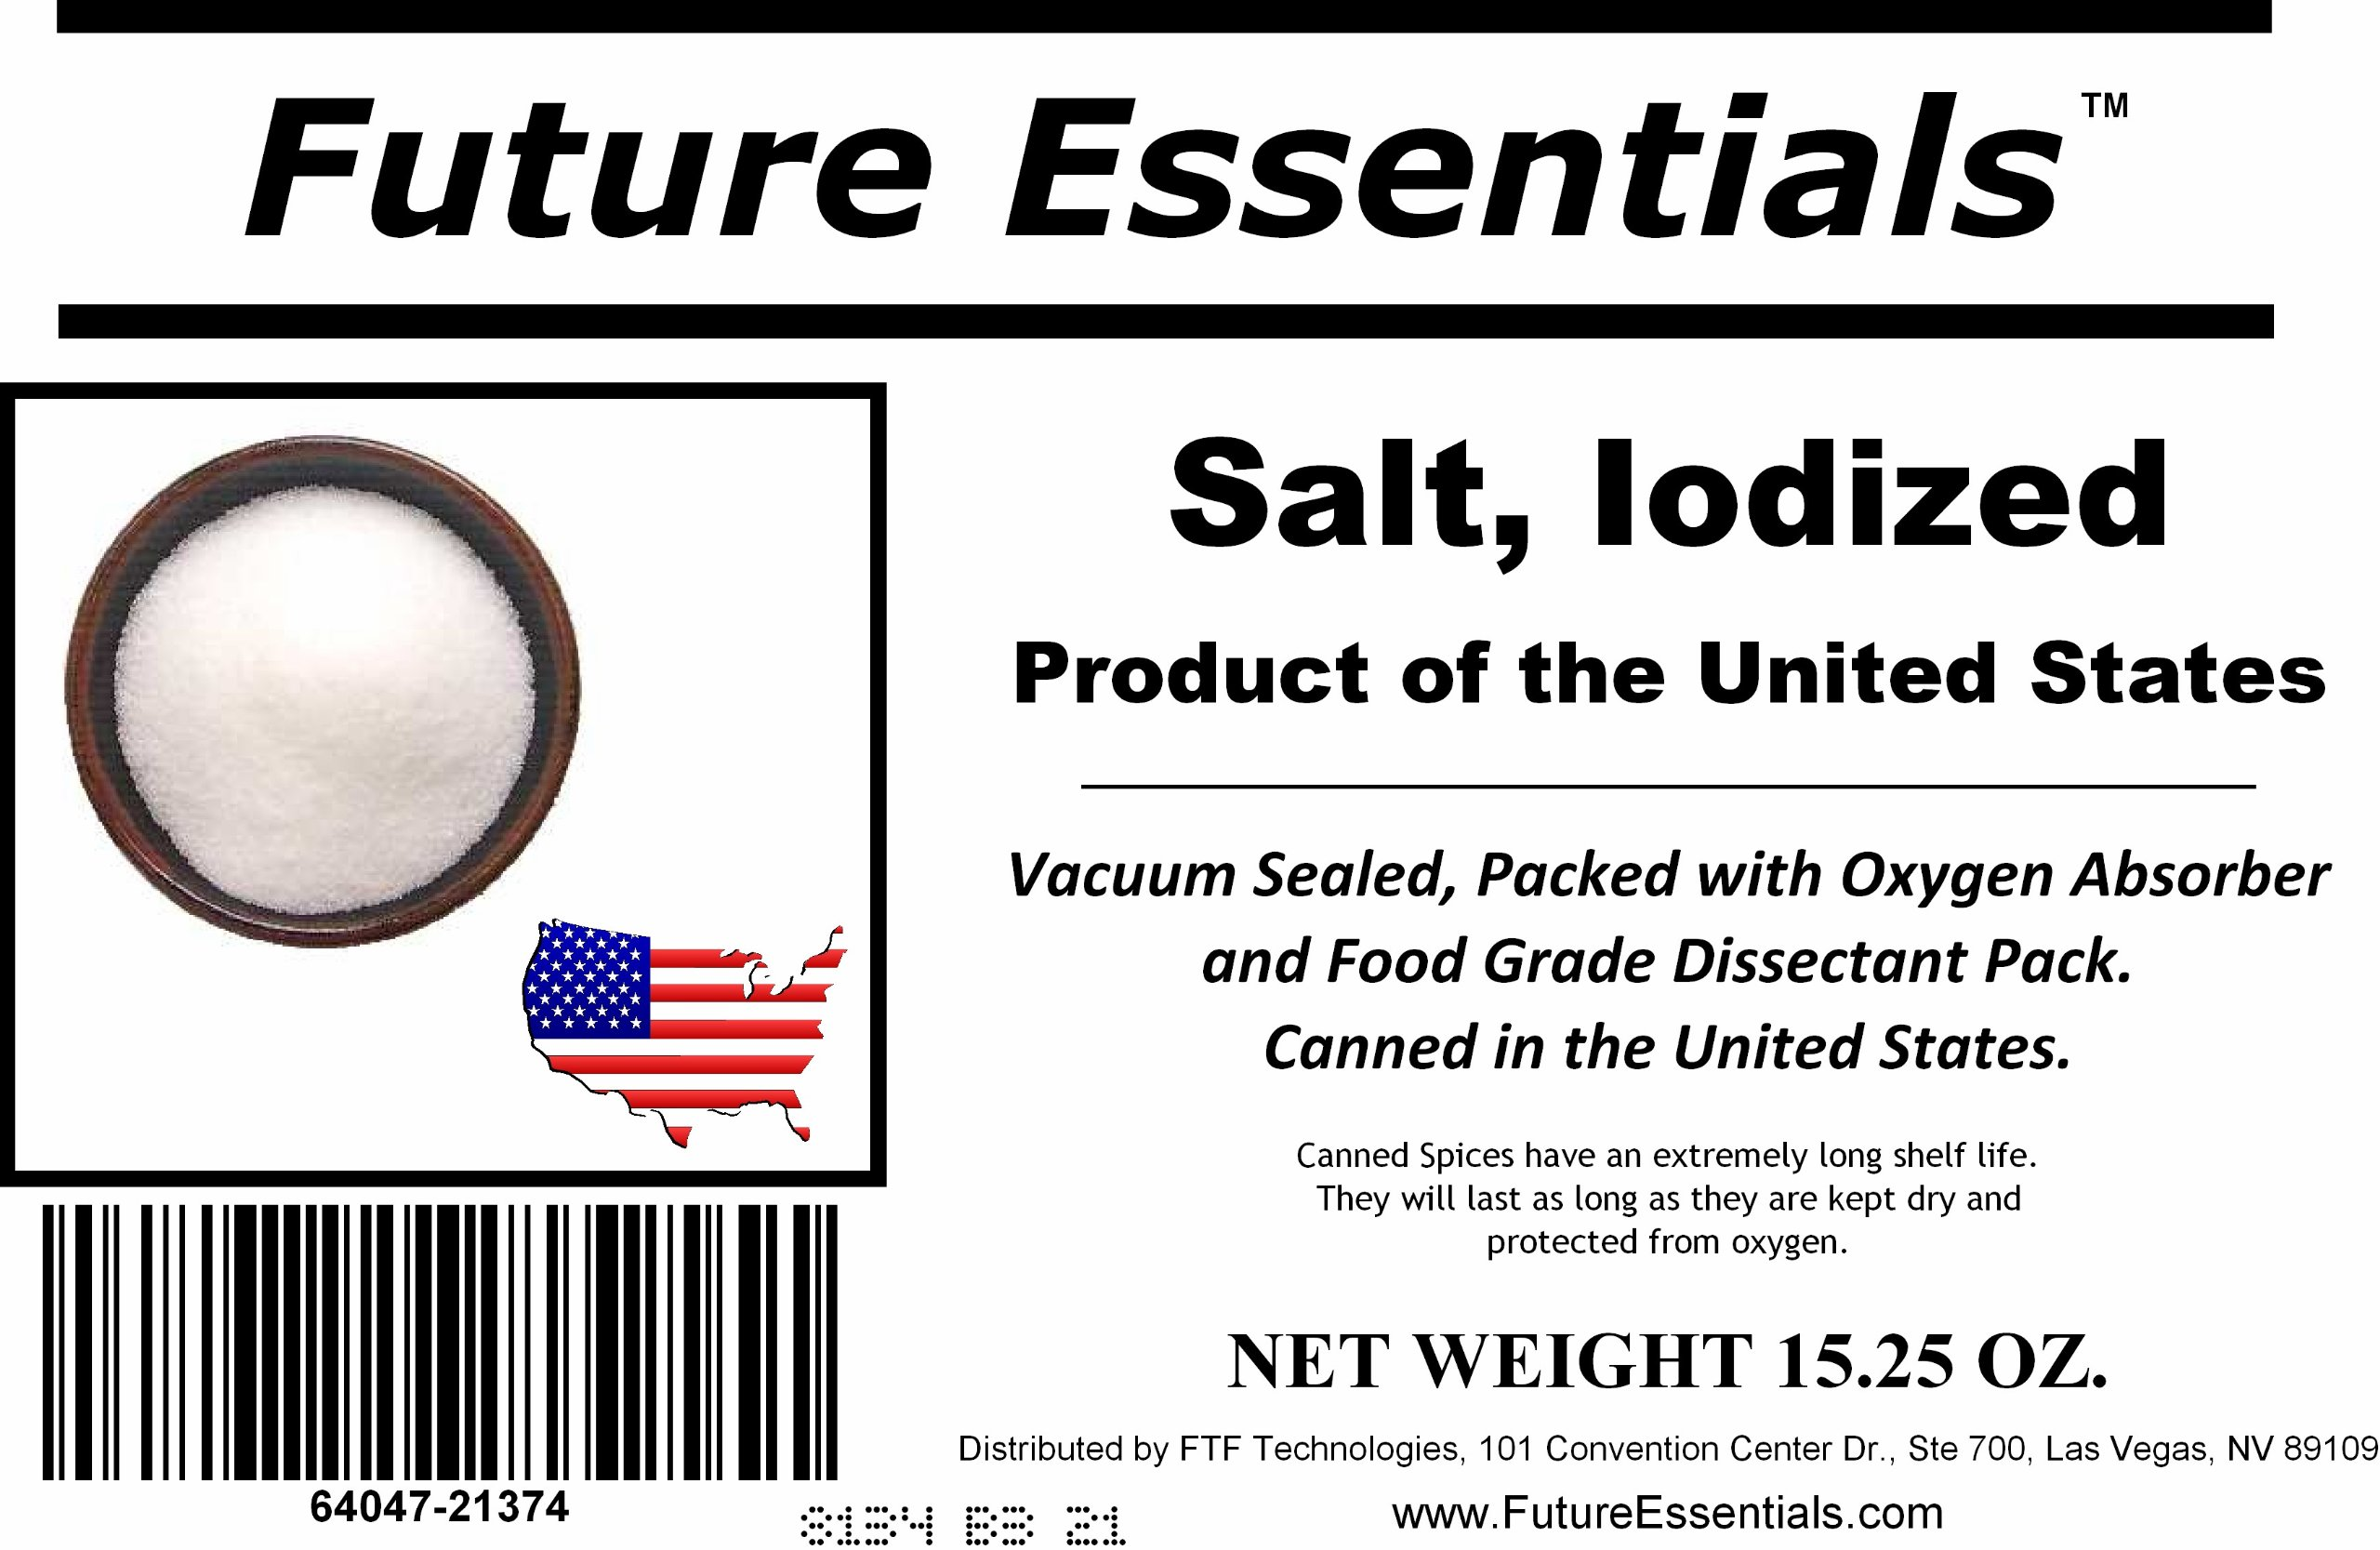 1 Case/12 Cans of Future Essentials Canned Iodized Salt 32 oz per can